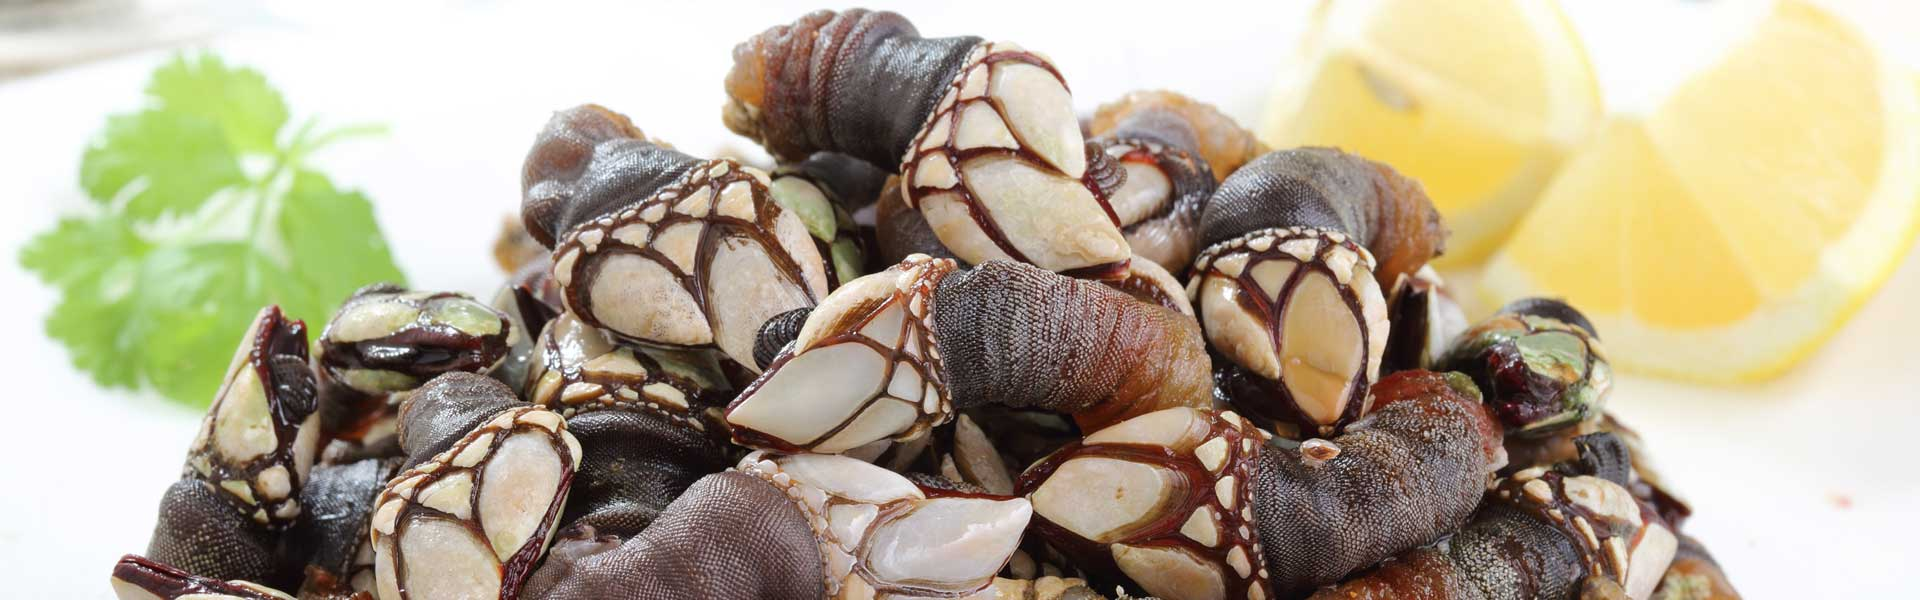 goose barnacles with bay leaves ad lemon